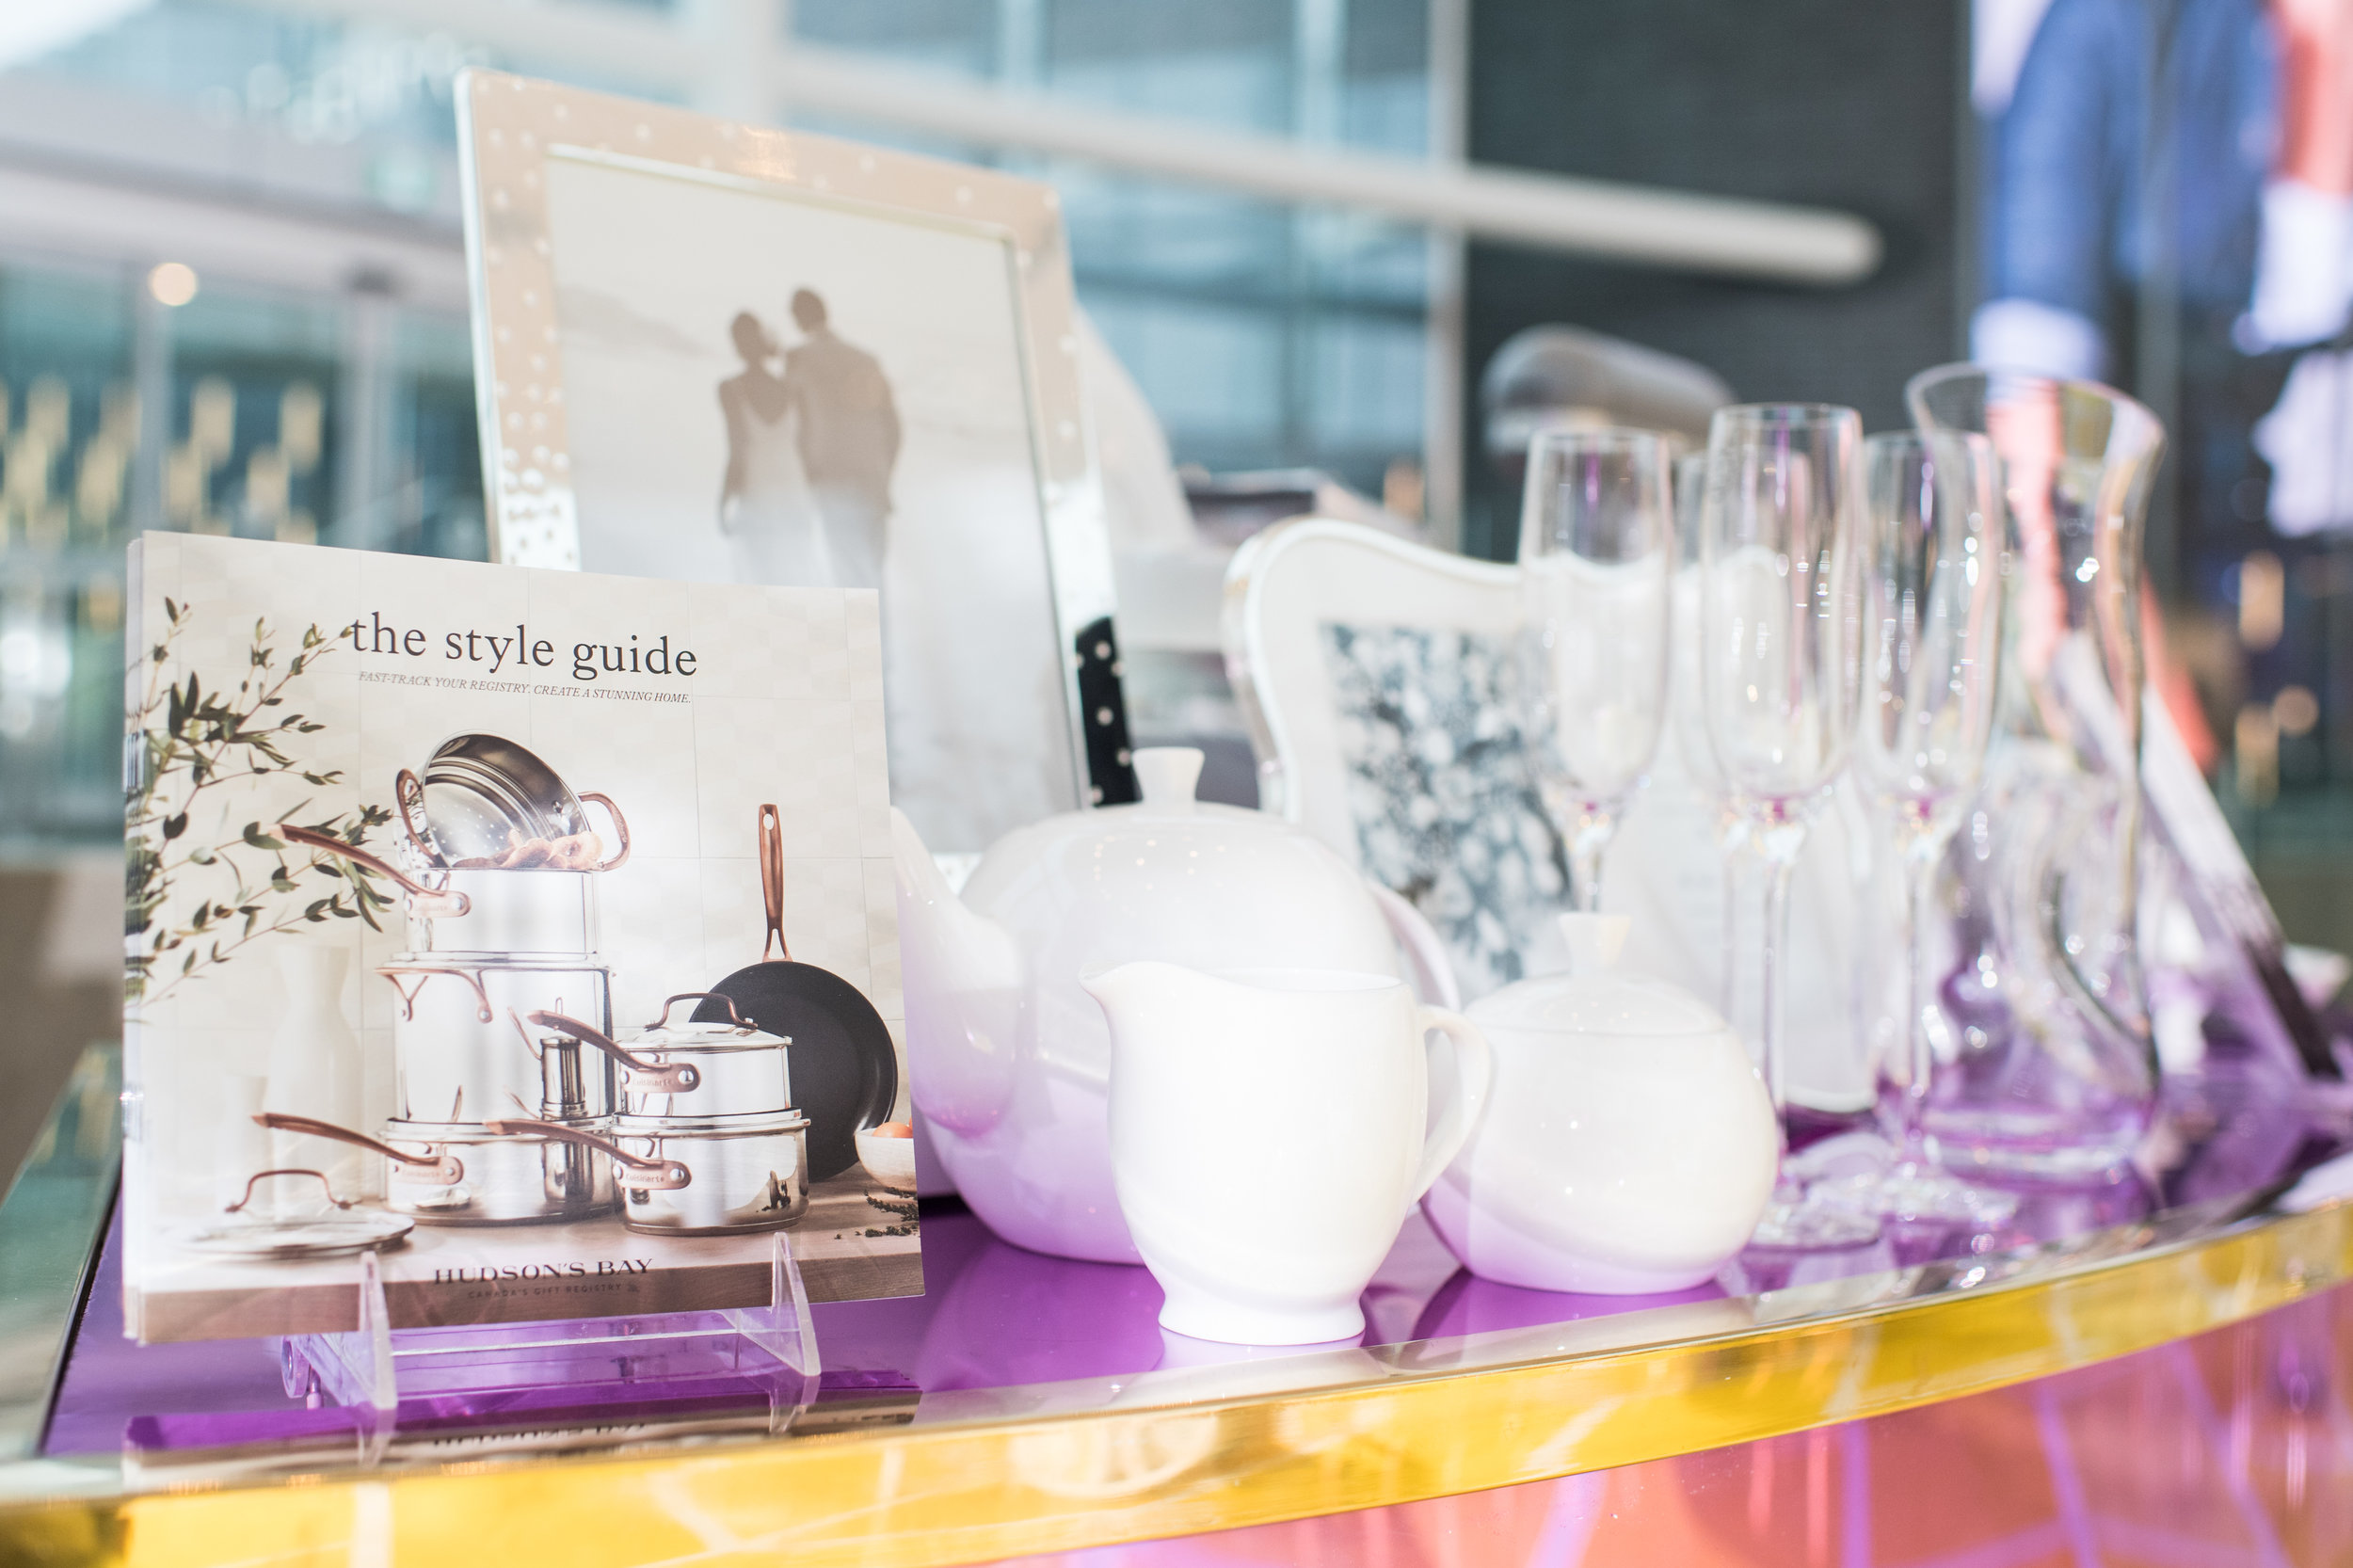 August In Bloom - Hudson's Bay kitchenware - #SQ1Bridal (Square One Shopping Centre)